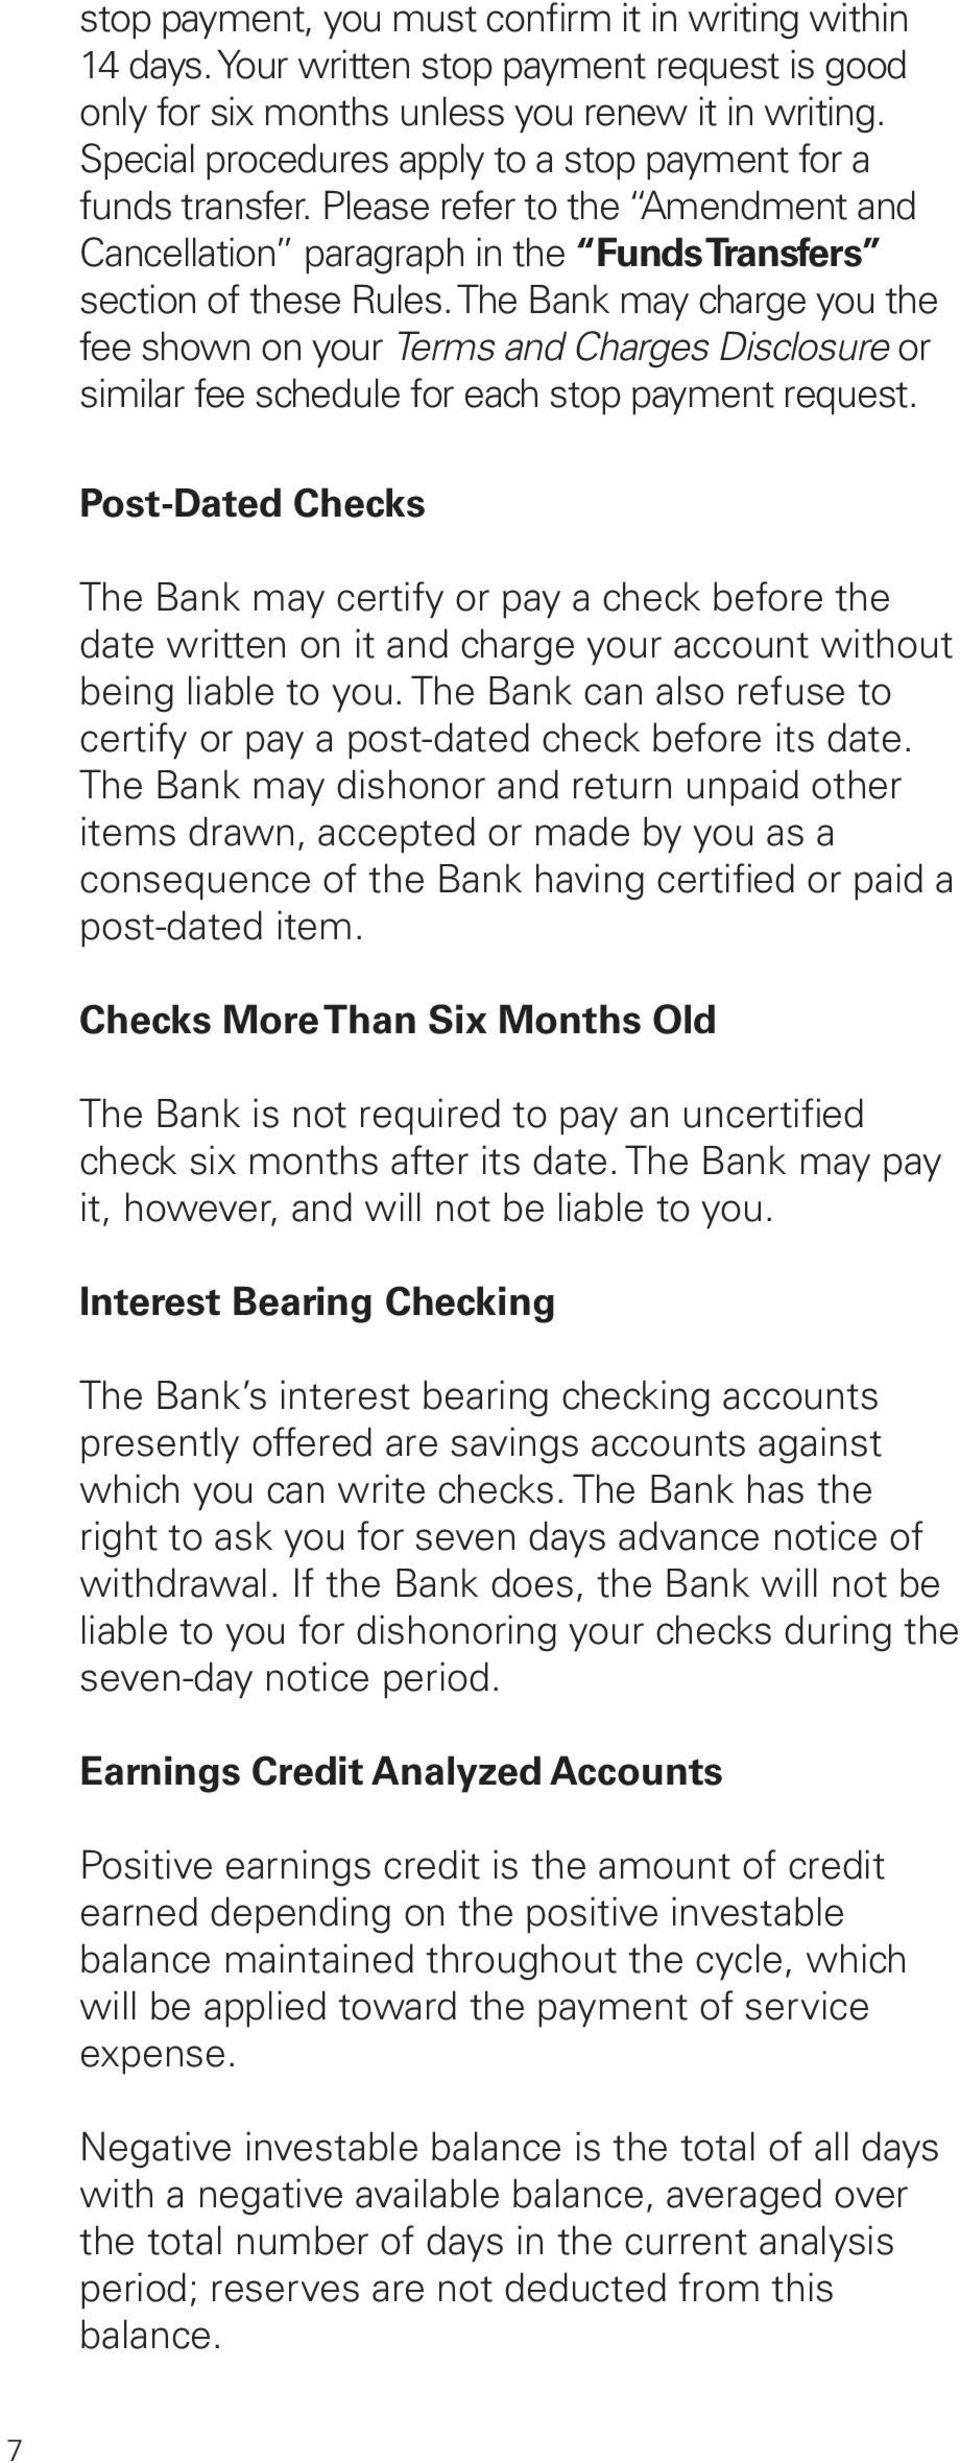 Rules For  Commercial Deposit Accounts - PDF